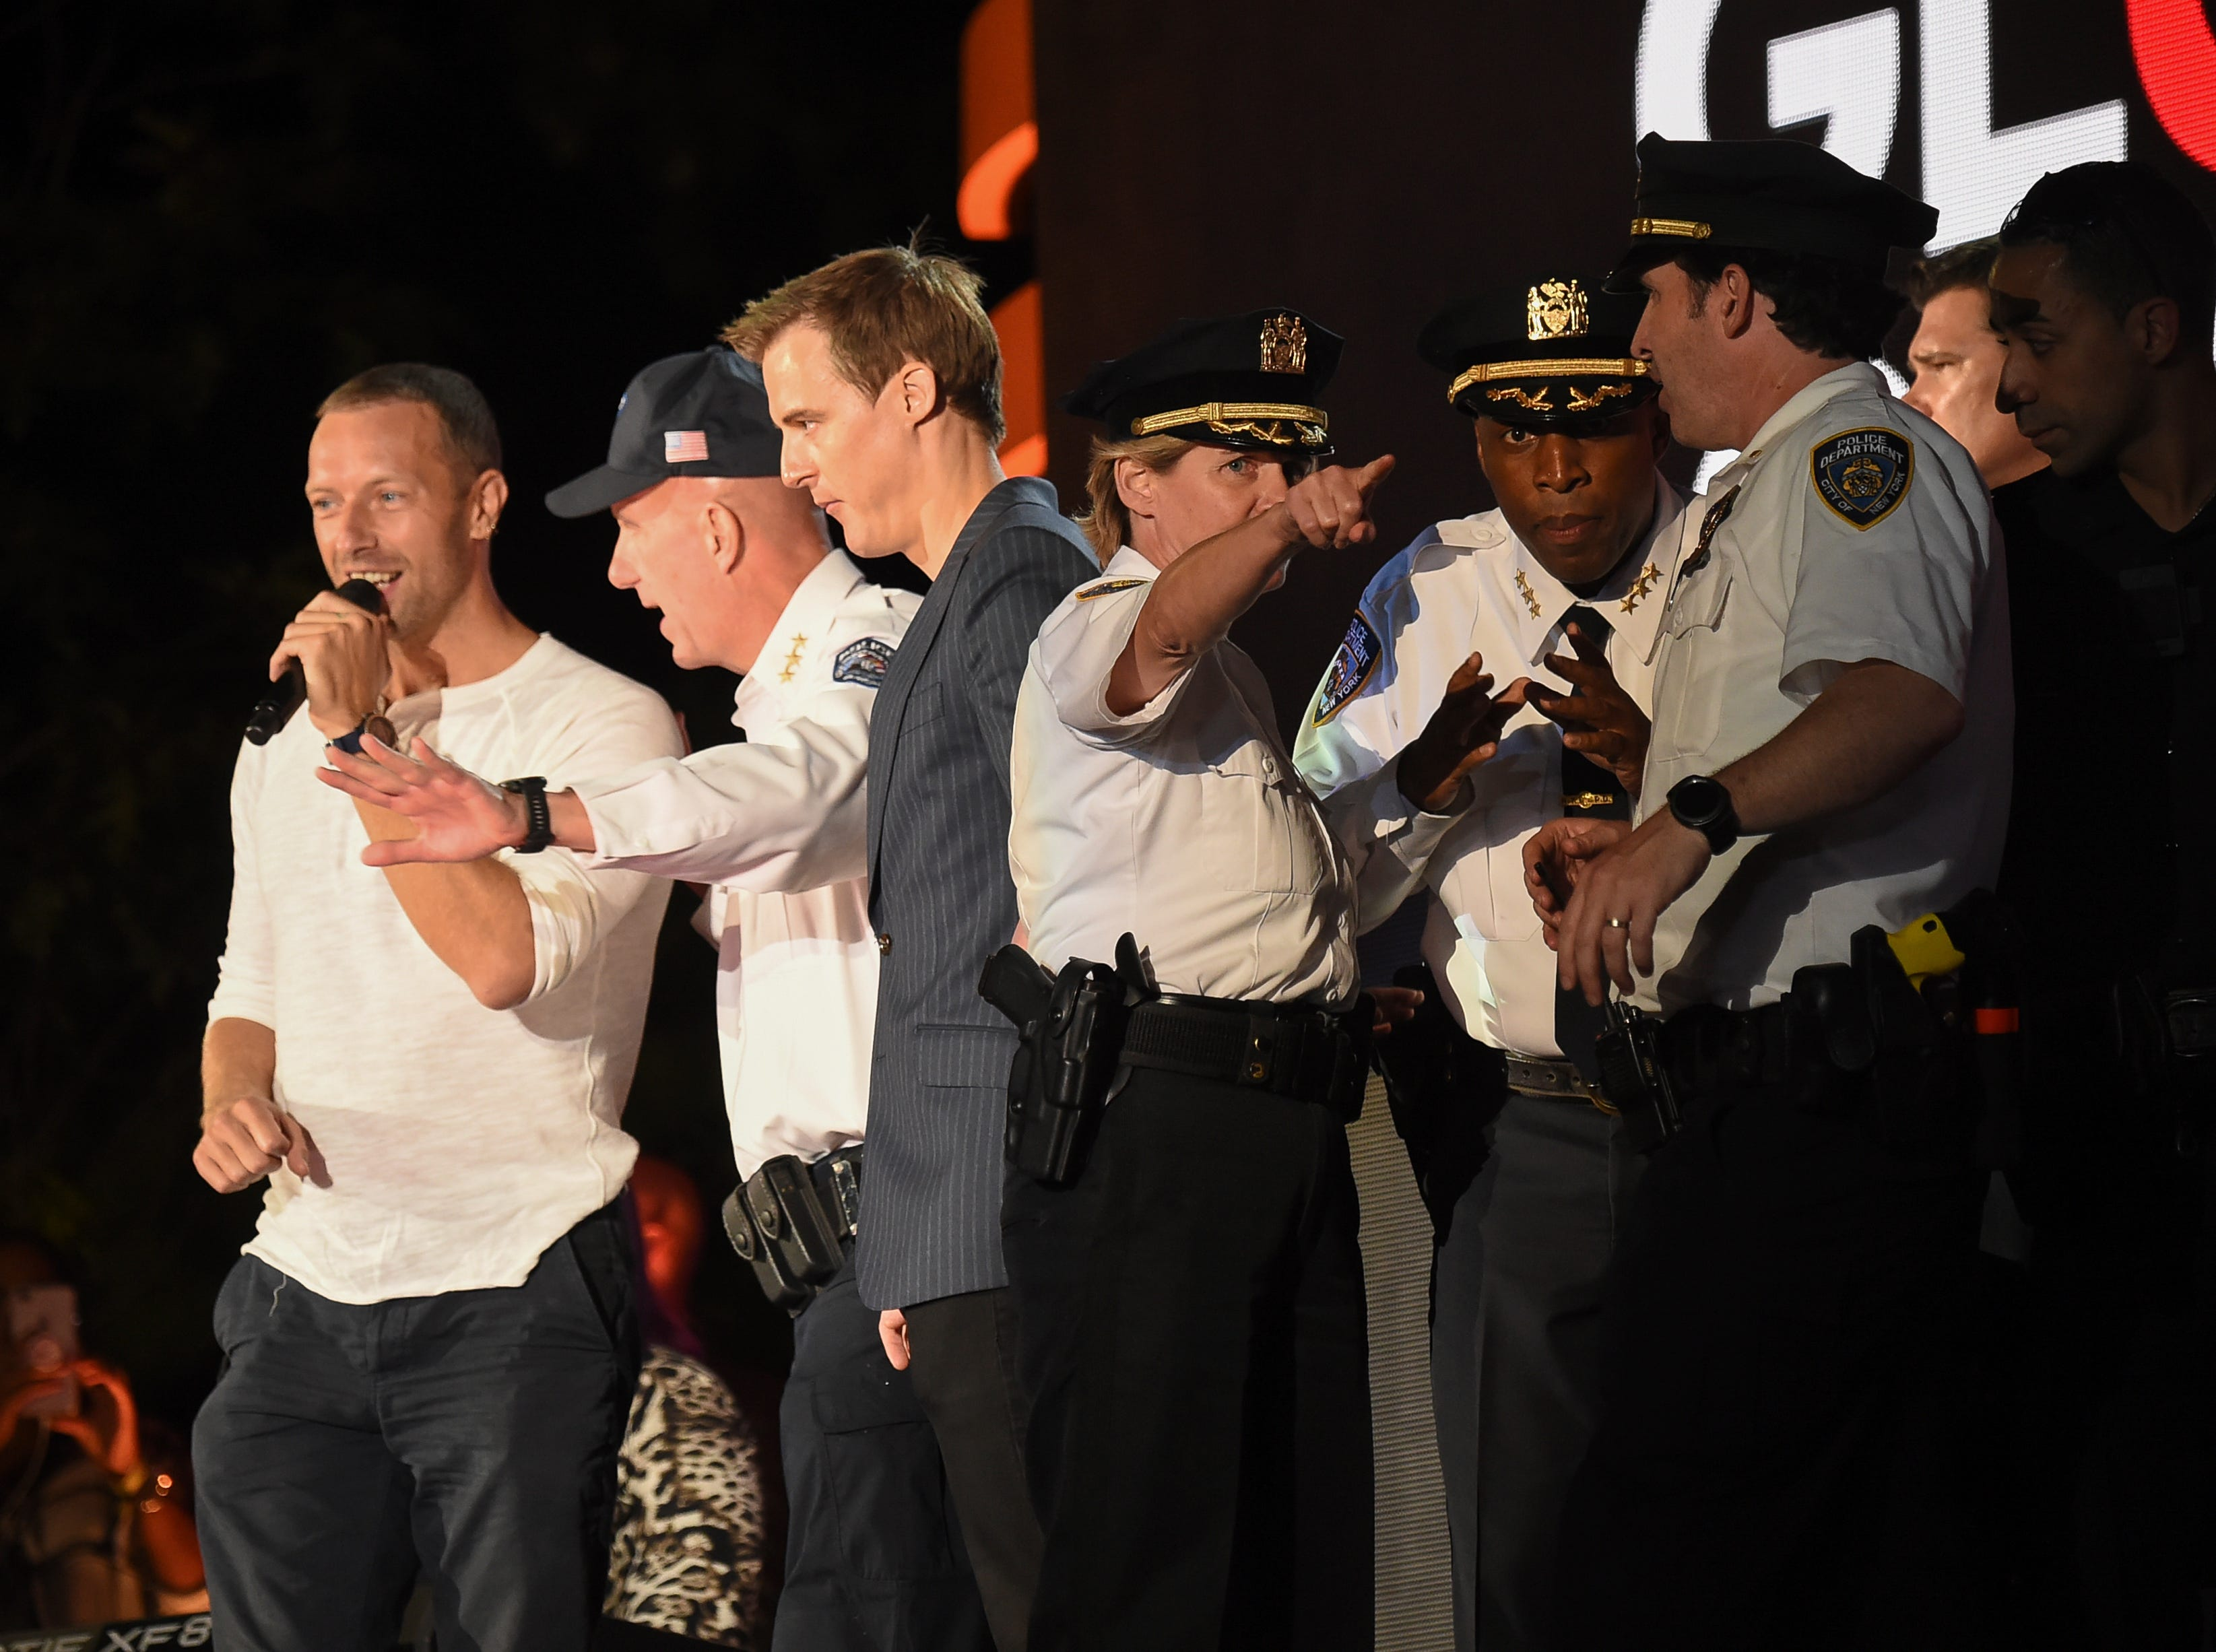 Police officials huddle on stage as Chris Martin addresses the audience after the crowd panic at the 2018 Global Citizen Festival in Central Park on Saturday, Sept. 29, 2018, in New York. Fearing possible gunshots, it took only the collapse of a police barrier at the show Saturday to send thousands of spectators fleeing in panic. Authorities quickly took the stage, assuring the crowd they were safe.  (Photo by Evan Agostini/Invision/AP) ORG XMIT: NYEA0146